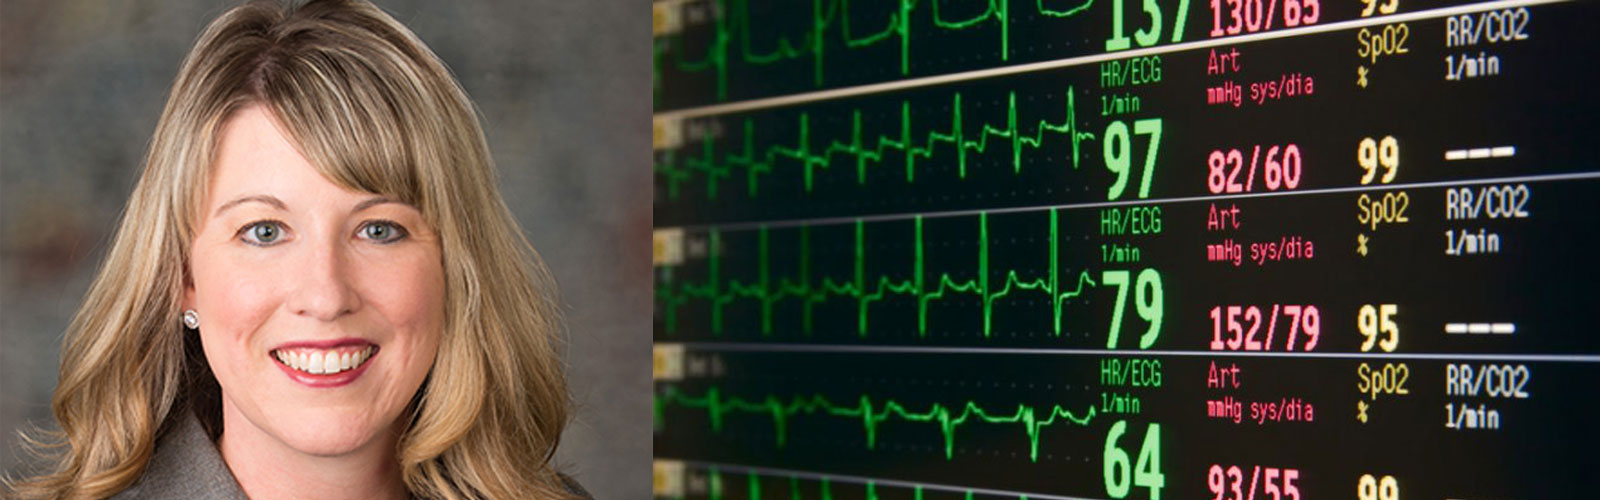 CNN article quotes Erica Ryherd on solving problem of noisy hospital environments